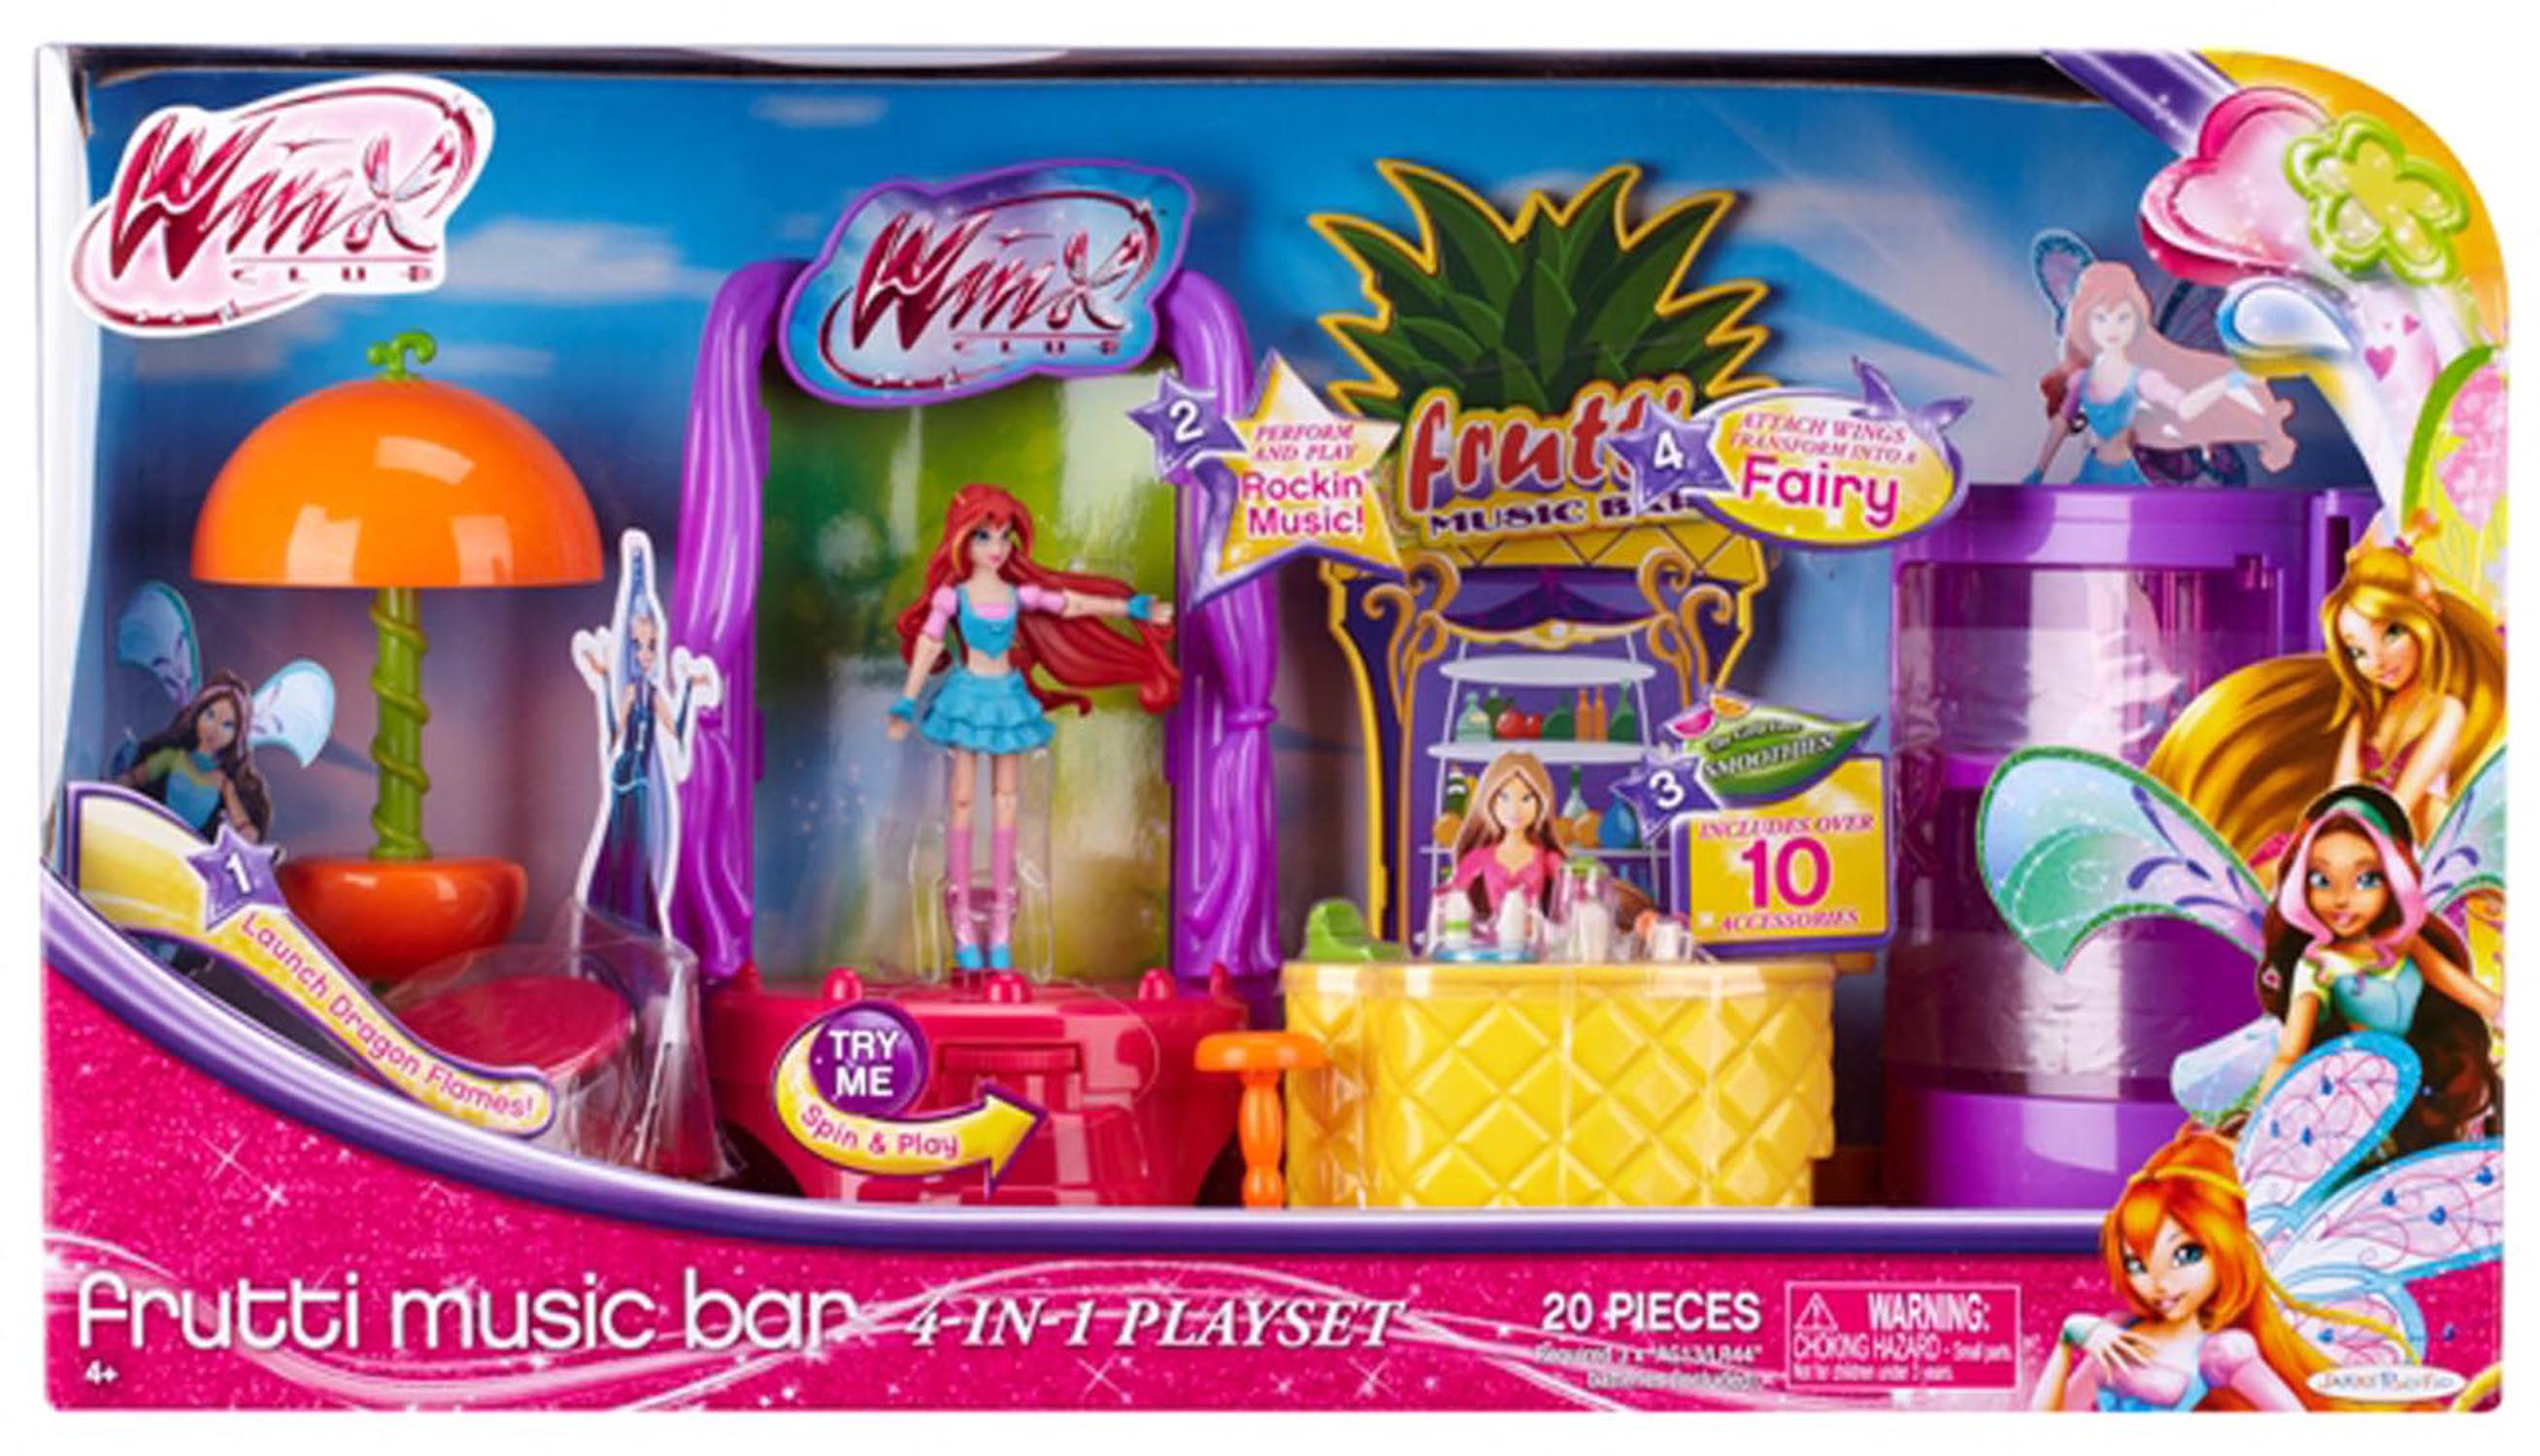 Frutti Music Bar 4-in-1 Playset